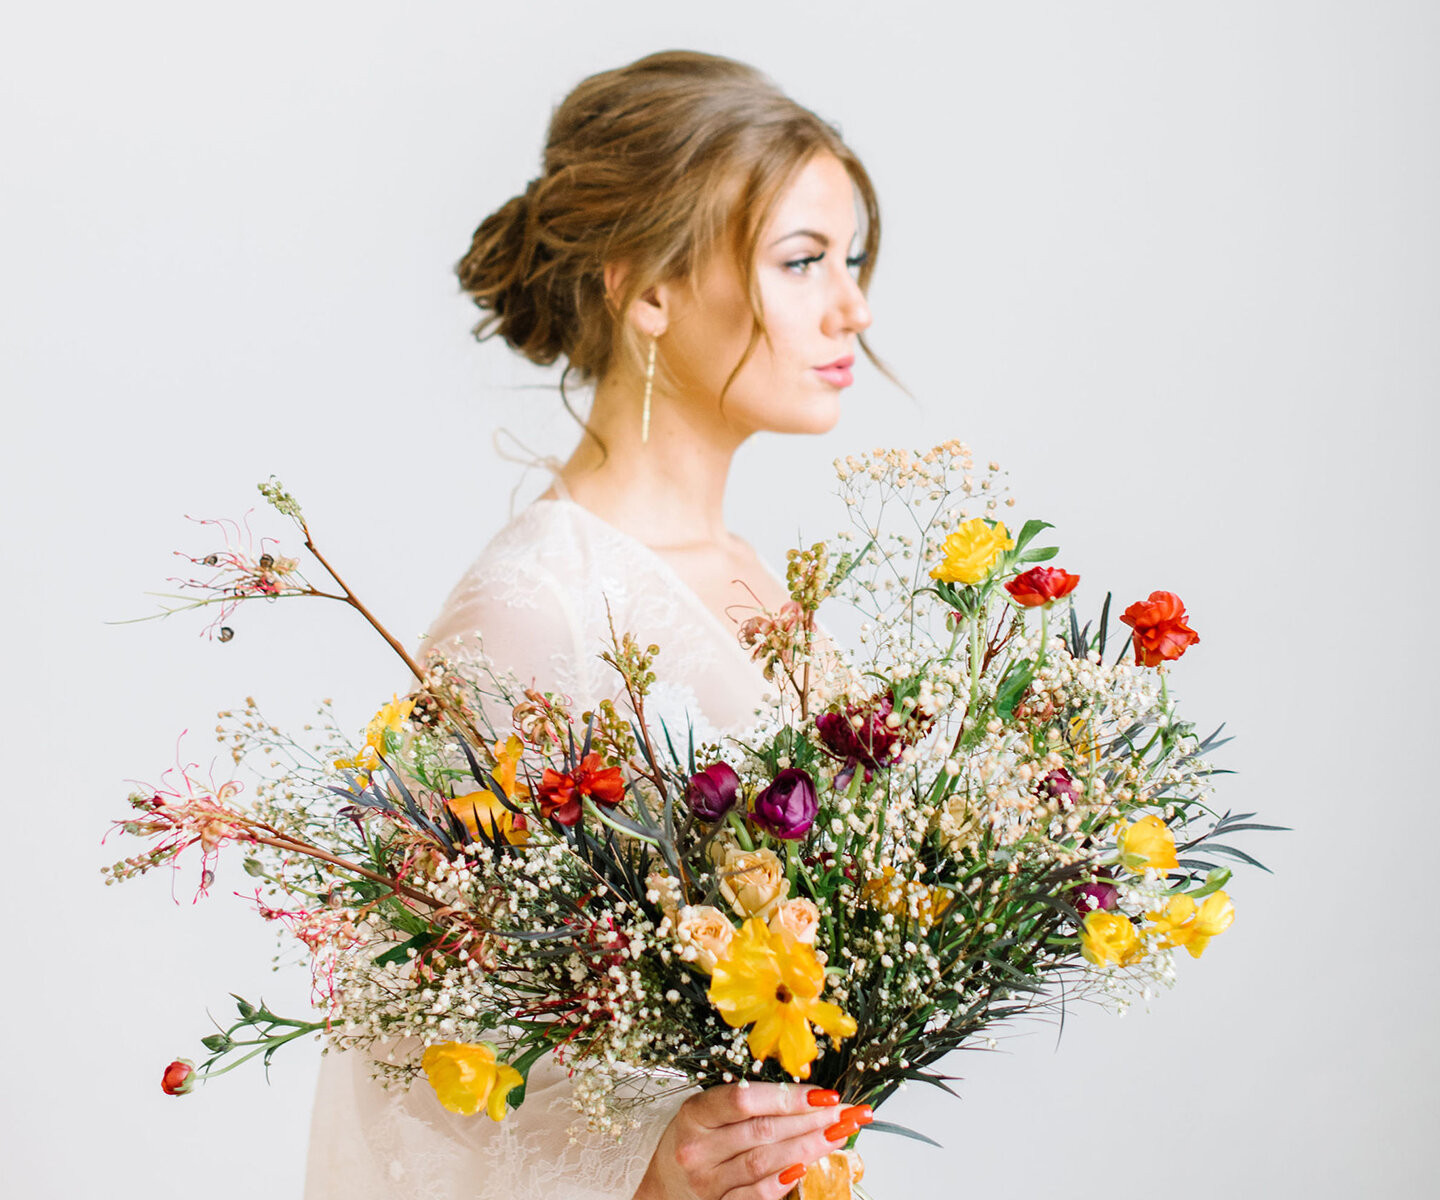 Bridal Bouquet Inspiration for Fall: 15 of the Prettiest Bouquets We've Seen This Autumn in Alberta and the Rockies